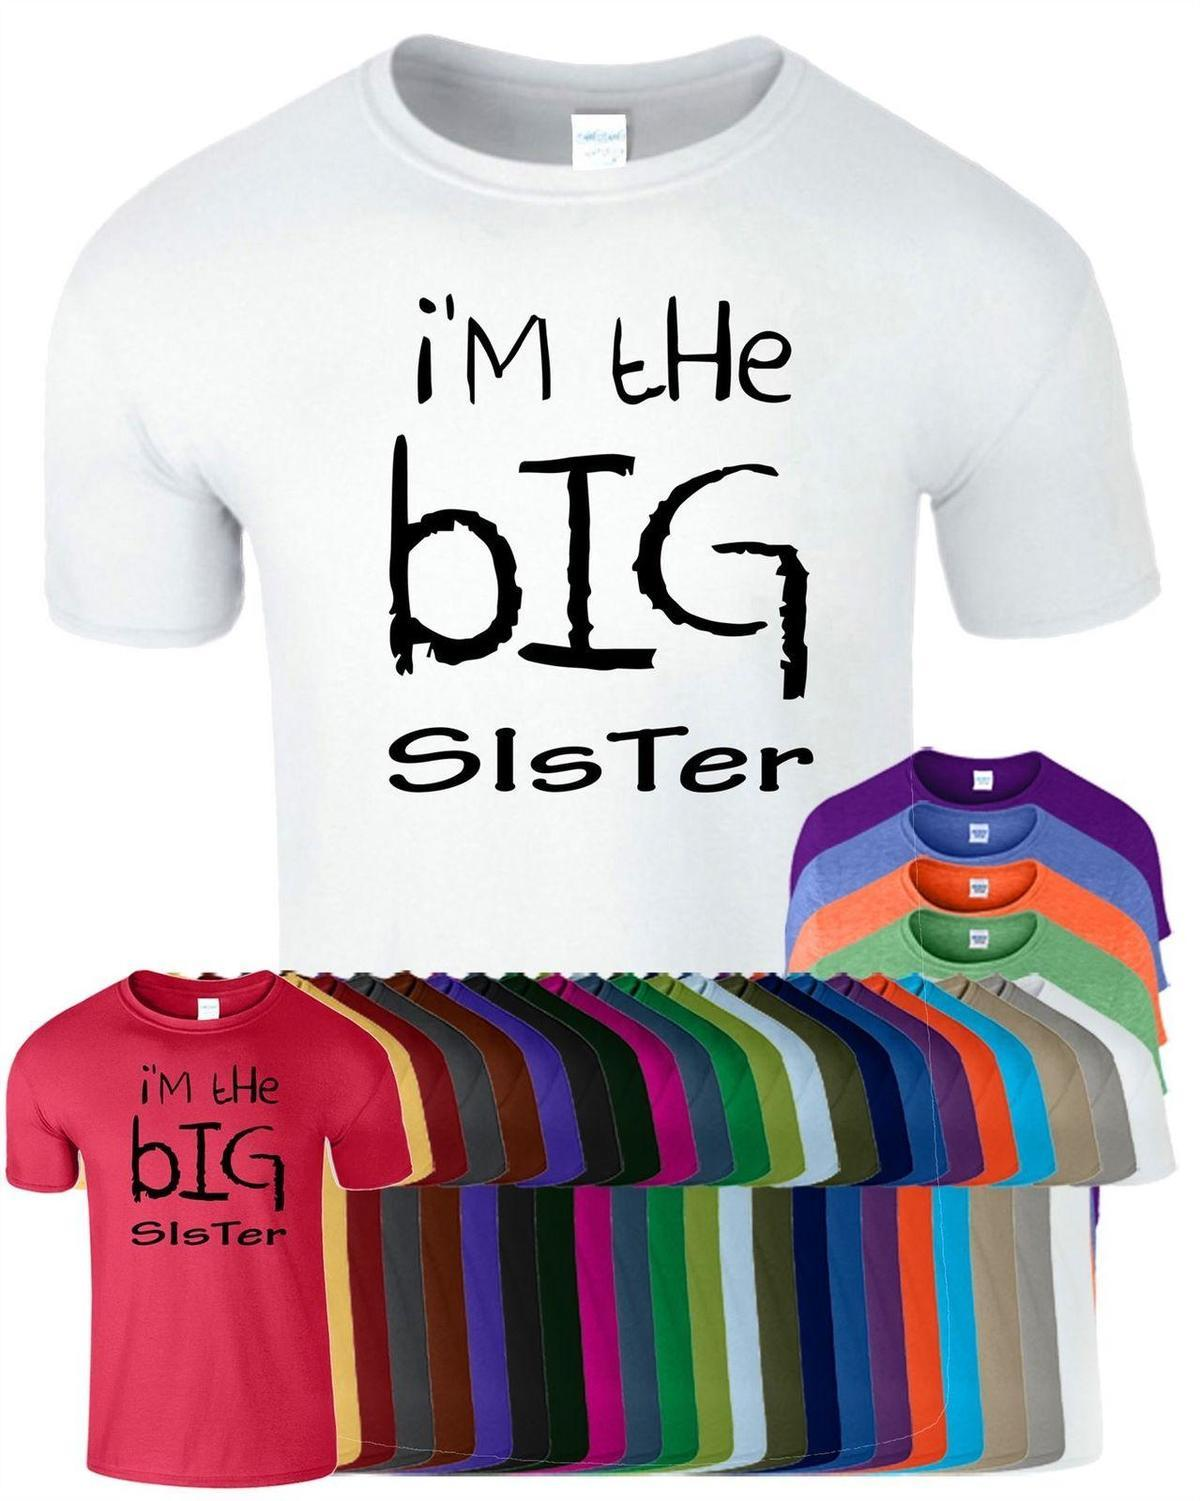 Im The Big Sister Girls T Shirt Sisters Birthday Gift Present Top Tee Cool Funny Shirts On From Pxue3305 1214